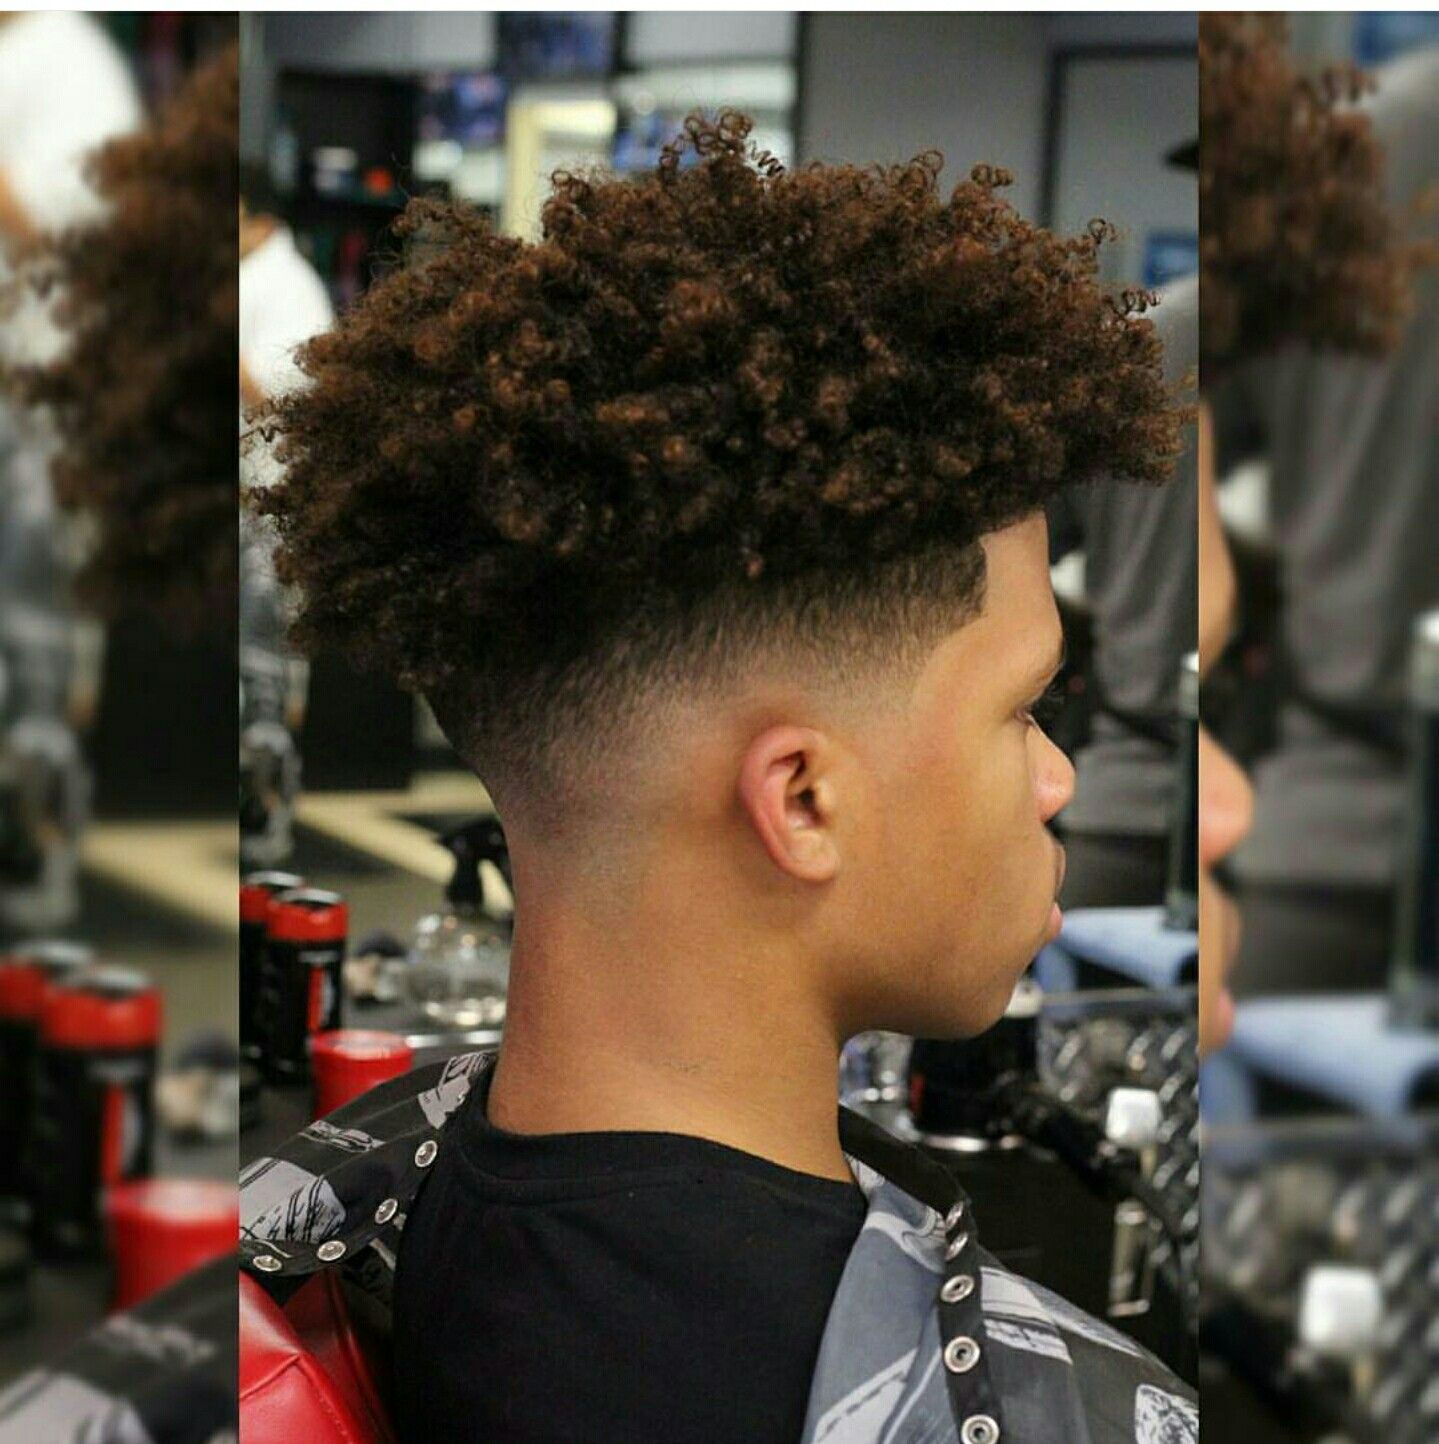 Pin by Mikel Staton on Hair Goals &amp Products Pinterest - Dope Hairstyles For Guys